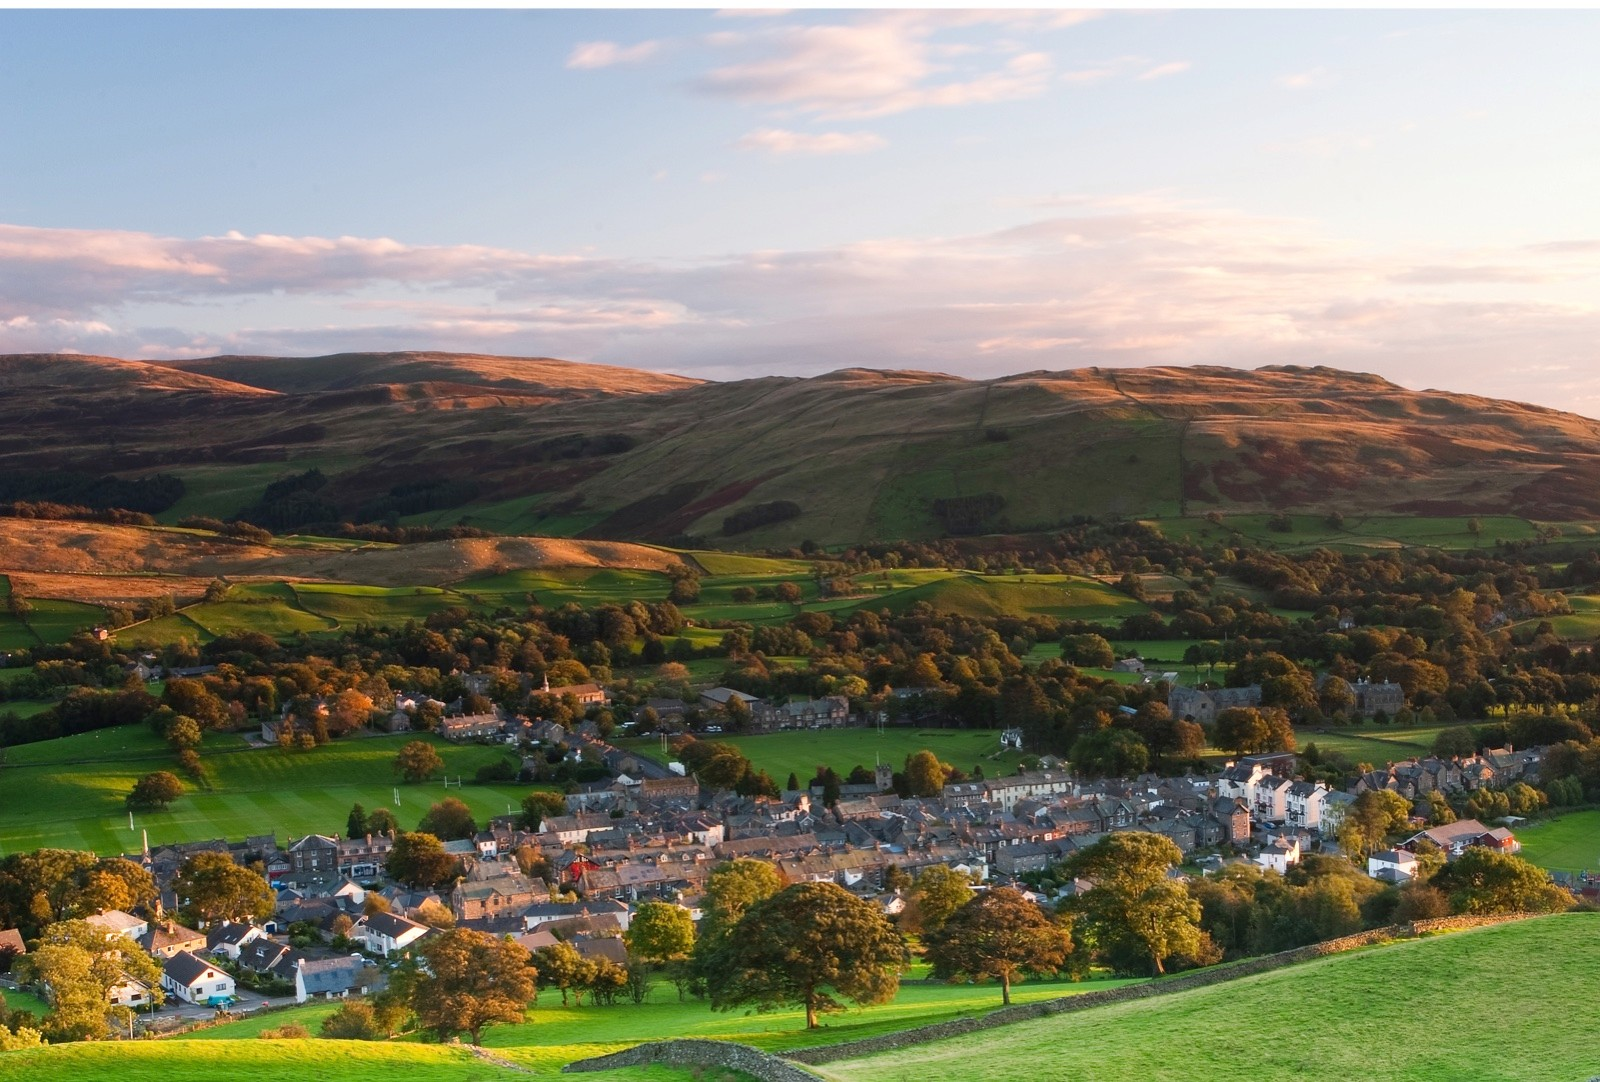 Sedbergh and Howell Fells